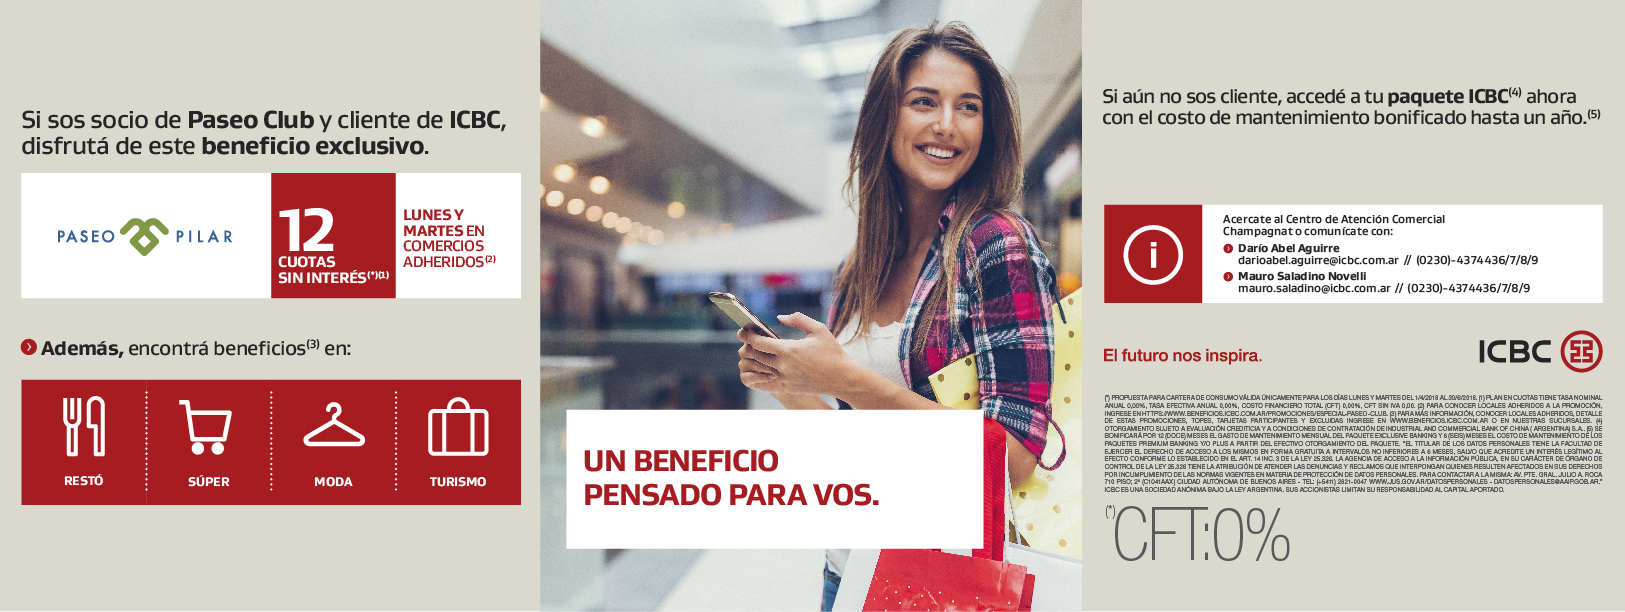 Banners-ICBC-Paseo-Club-Lunes-y-Martes-1140x440-02